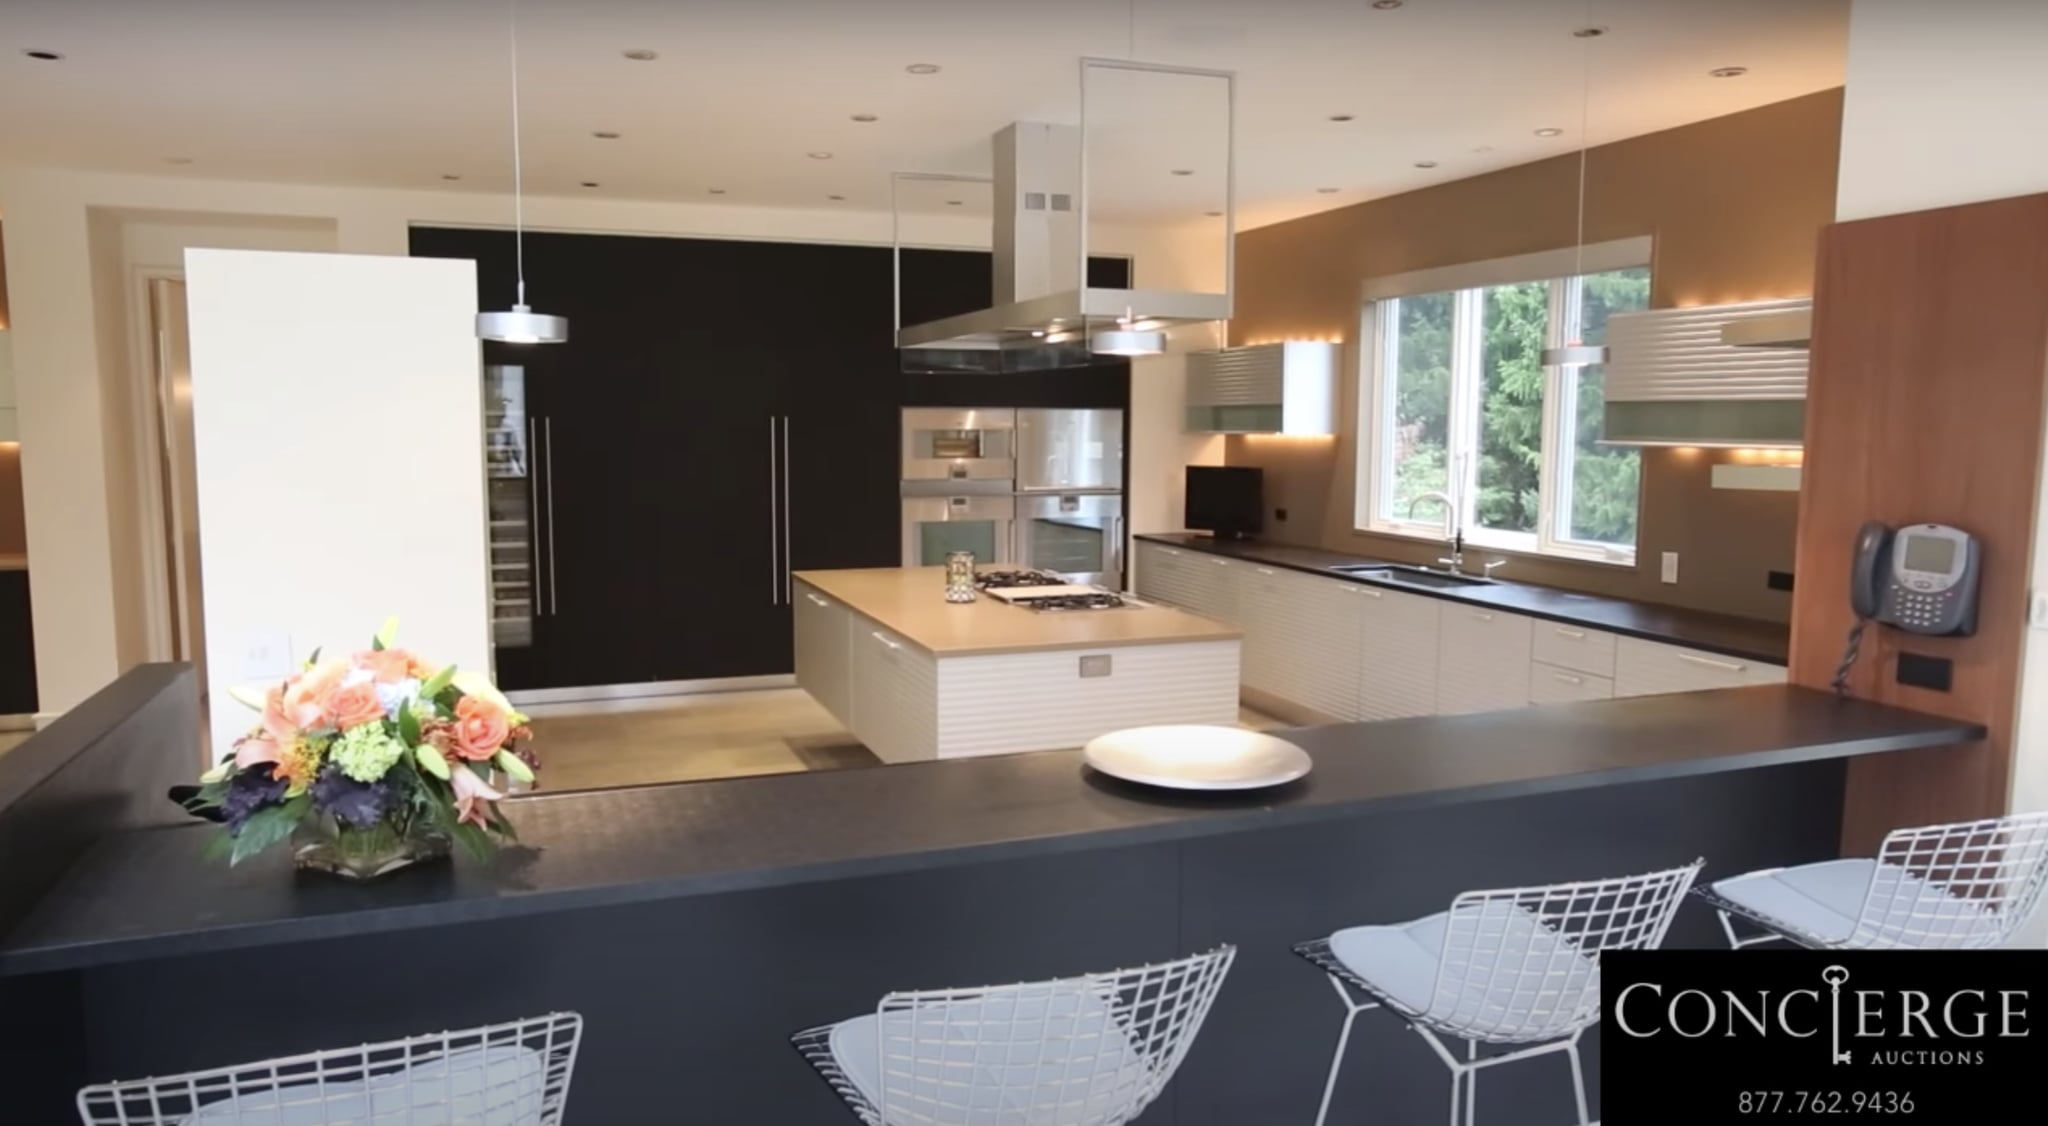 Renovated Kitchen Take A Look Inside Michael Jordan S Illinois Mansion From His Chicago Bulls Glory Days Popsugar Home Photo 7